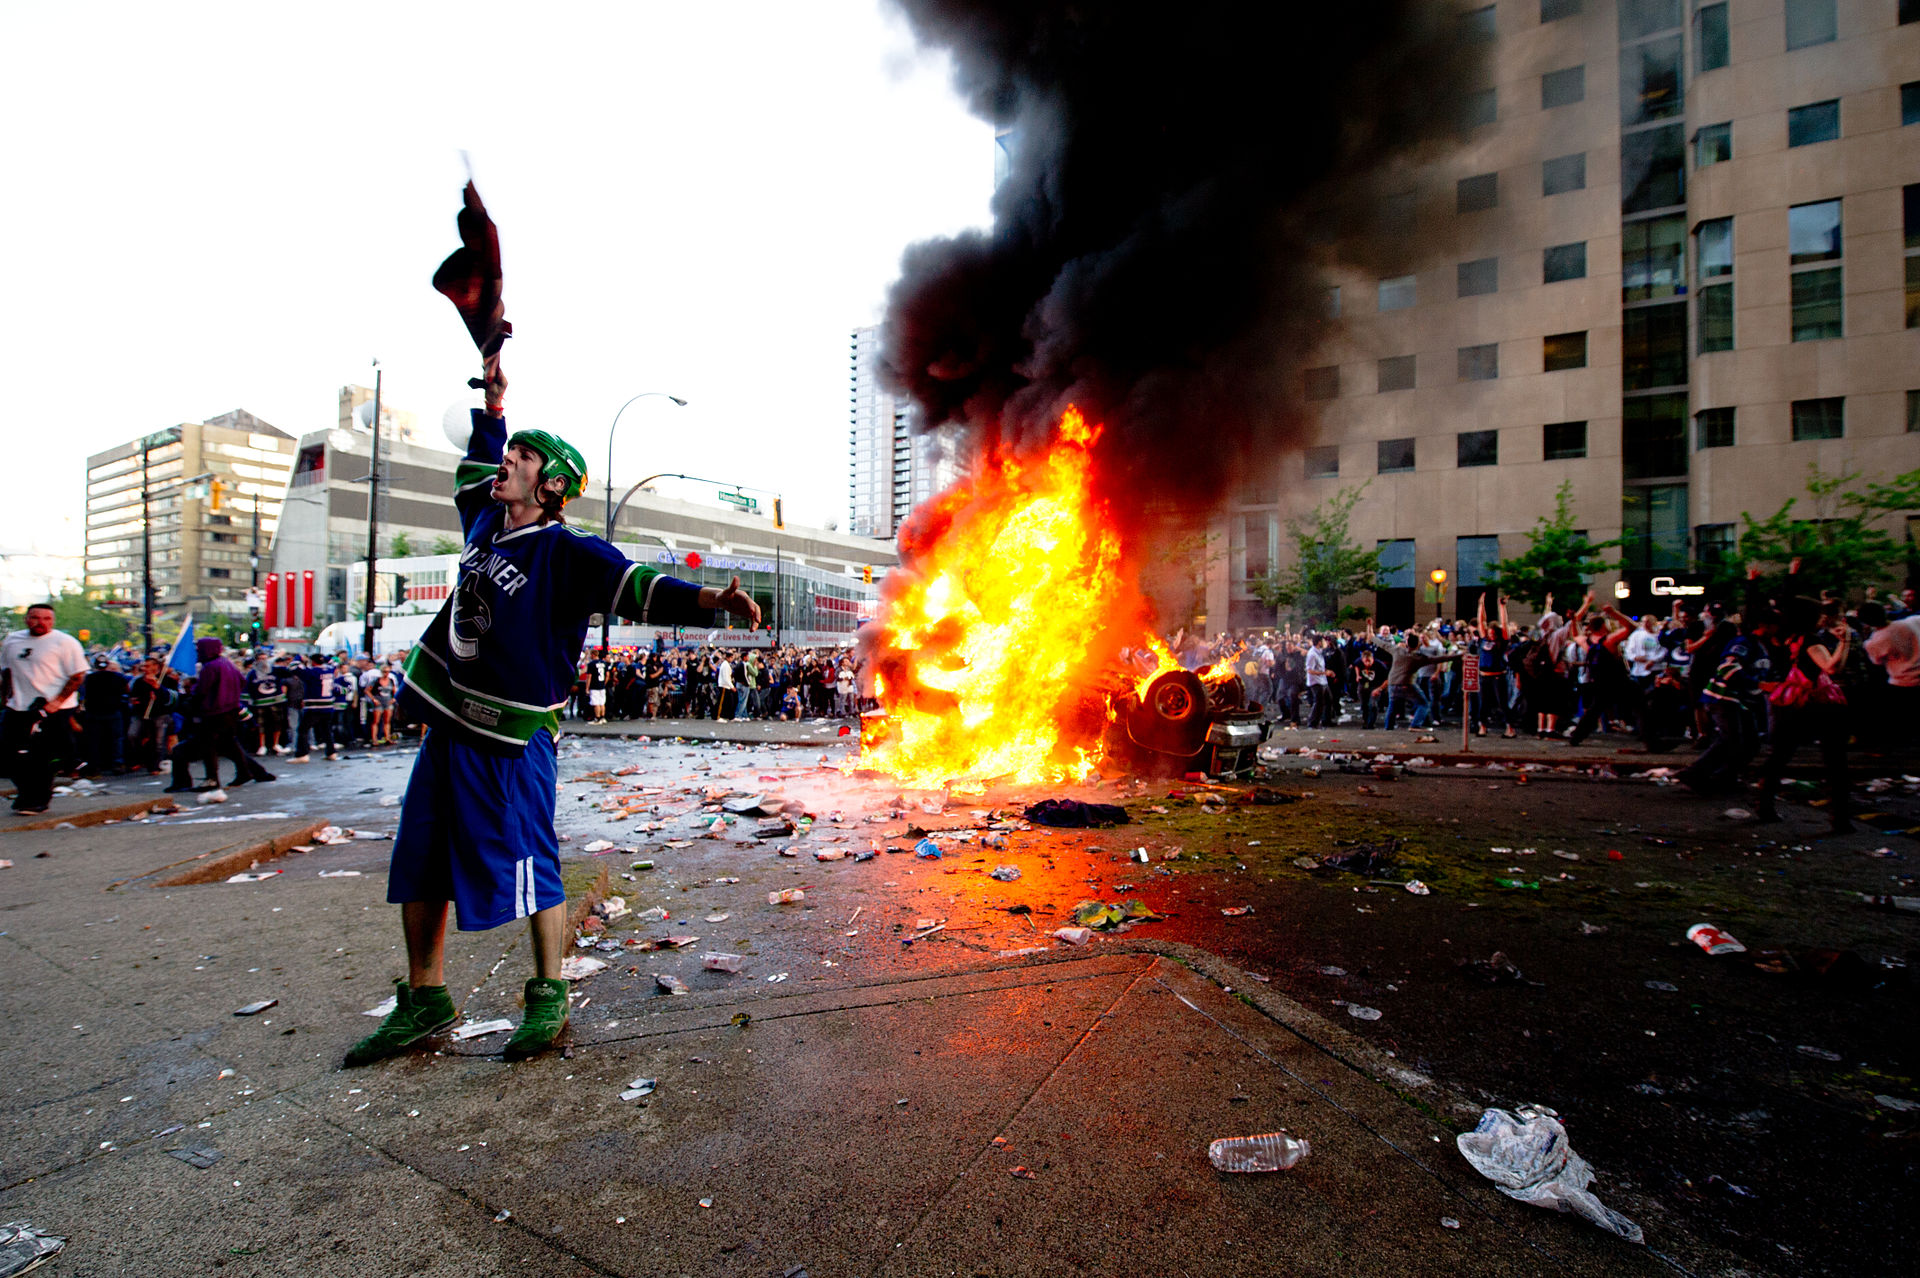 A rioter in downtown Vancouver on June 15, 2011. Image: Wikipedia